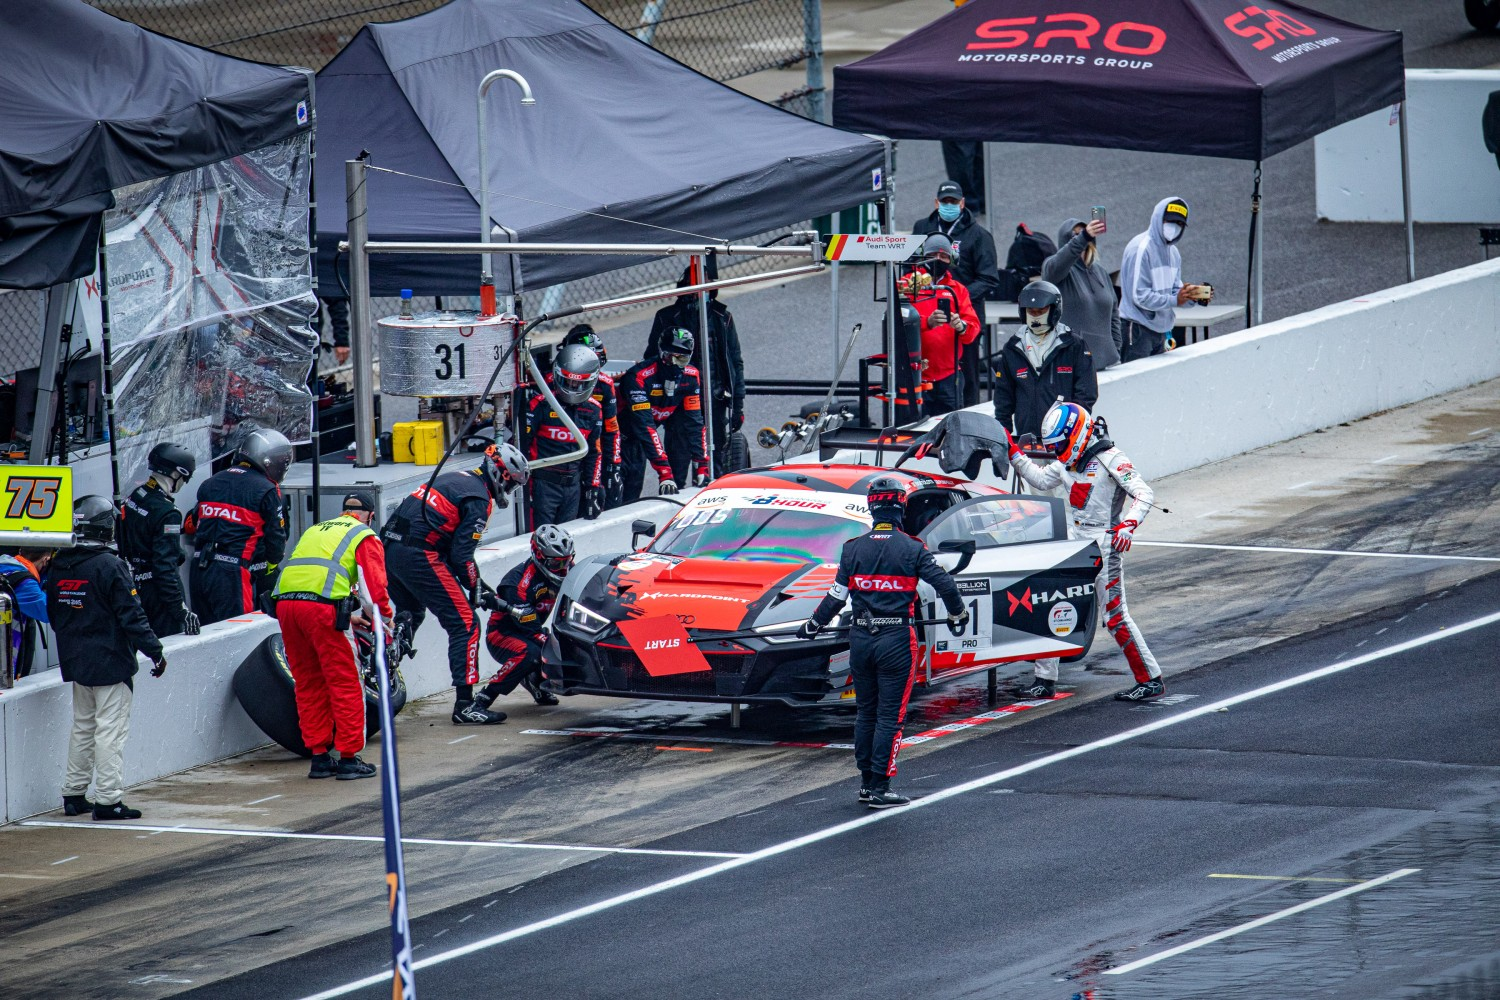 #31 Audi R8 LMS GT3 of Mirko Bortolotti, Spencer Pumpelly, and Markus Winkelhock, Audi Sport Team Hardpoint WRT, GT3 Overall, SRO, Indianapolis Motor Speedway, Indianapolis, IN, September 2020.  | Regis Lefebure/SRO